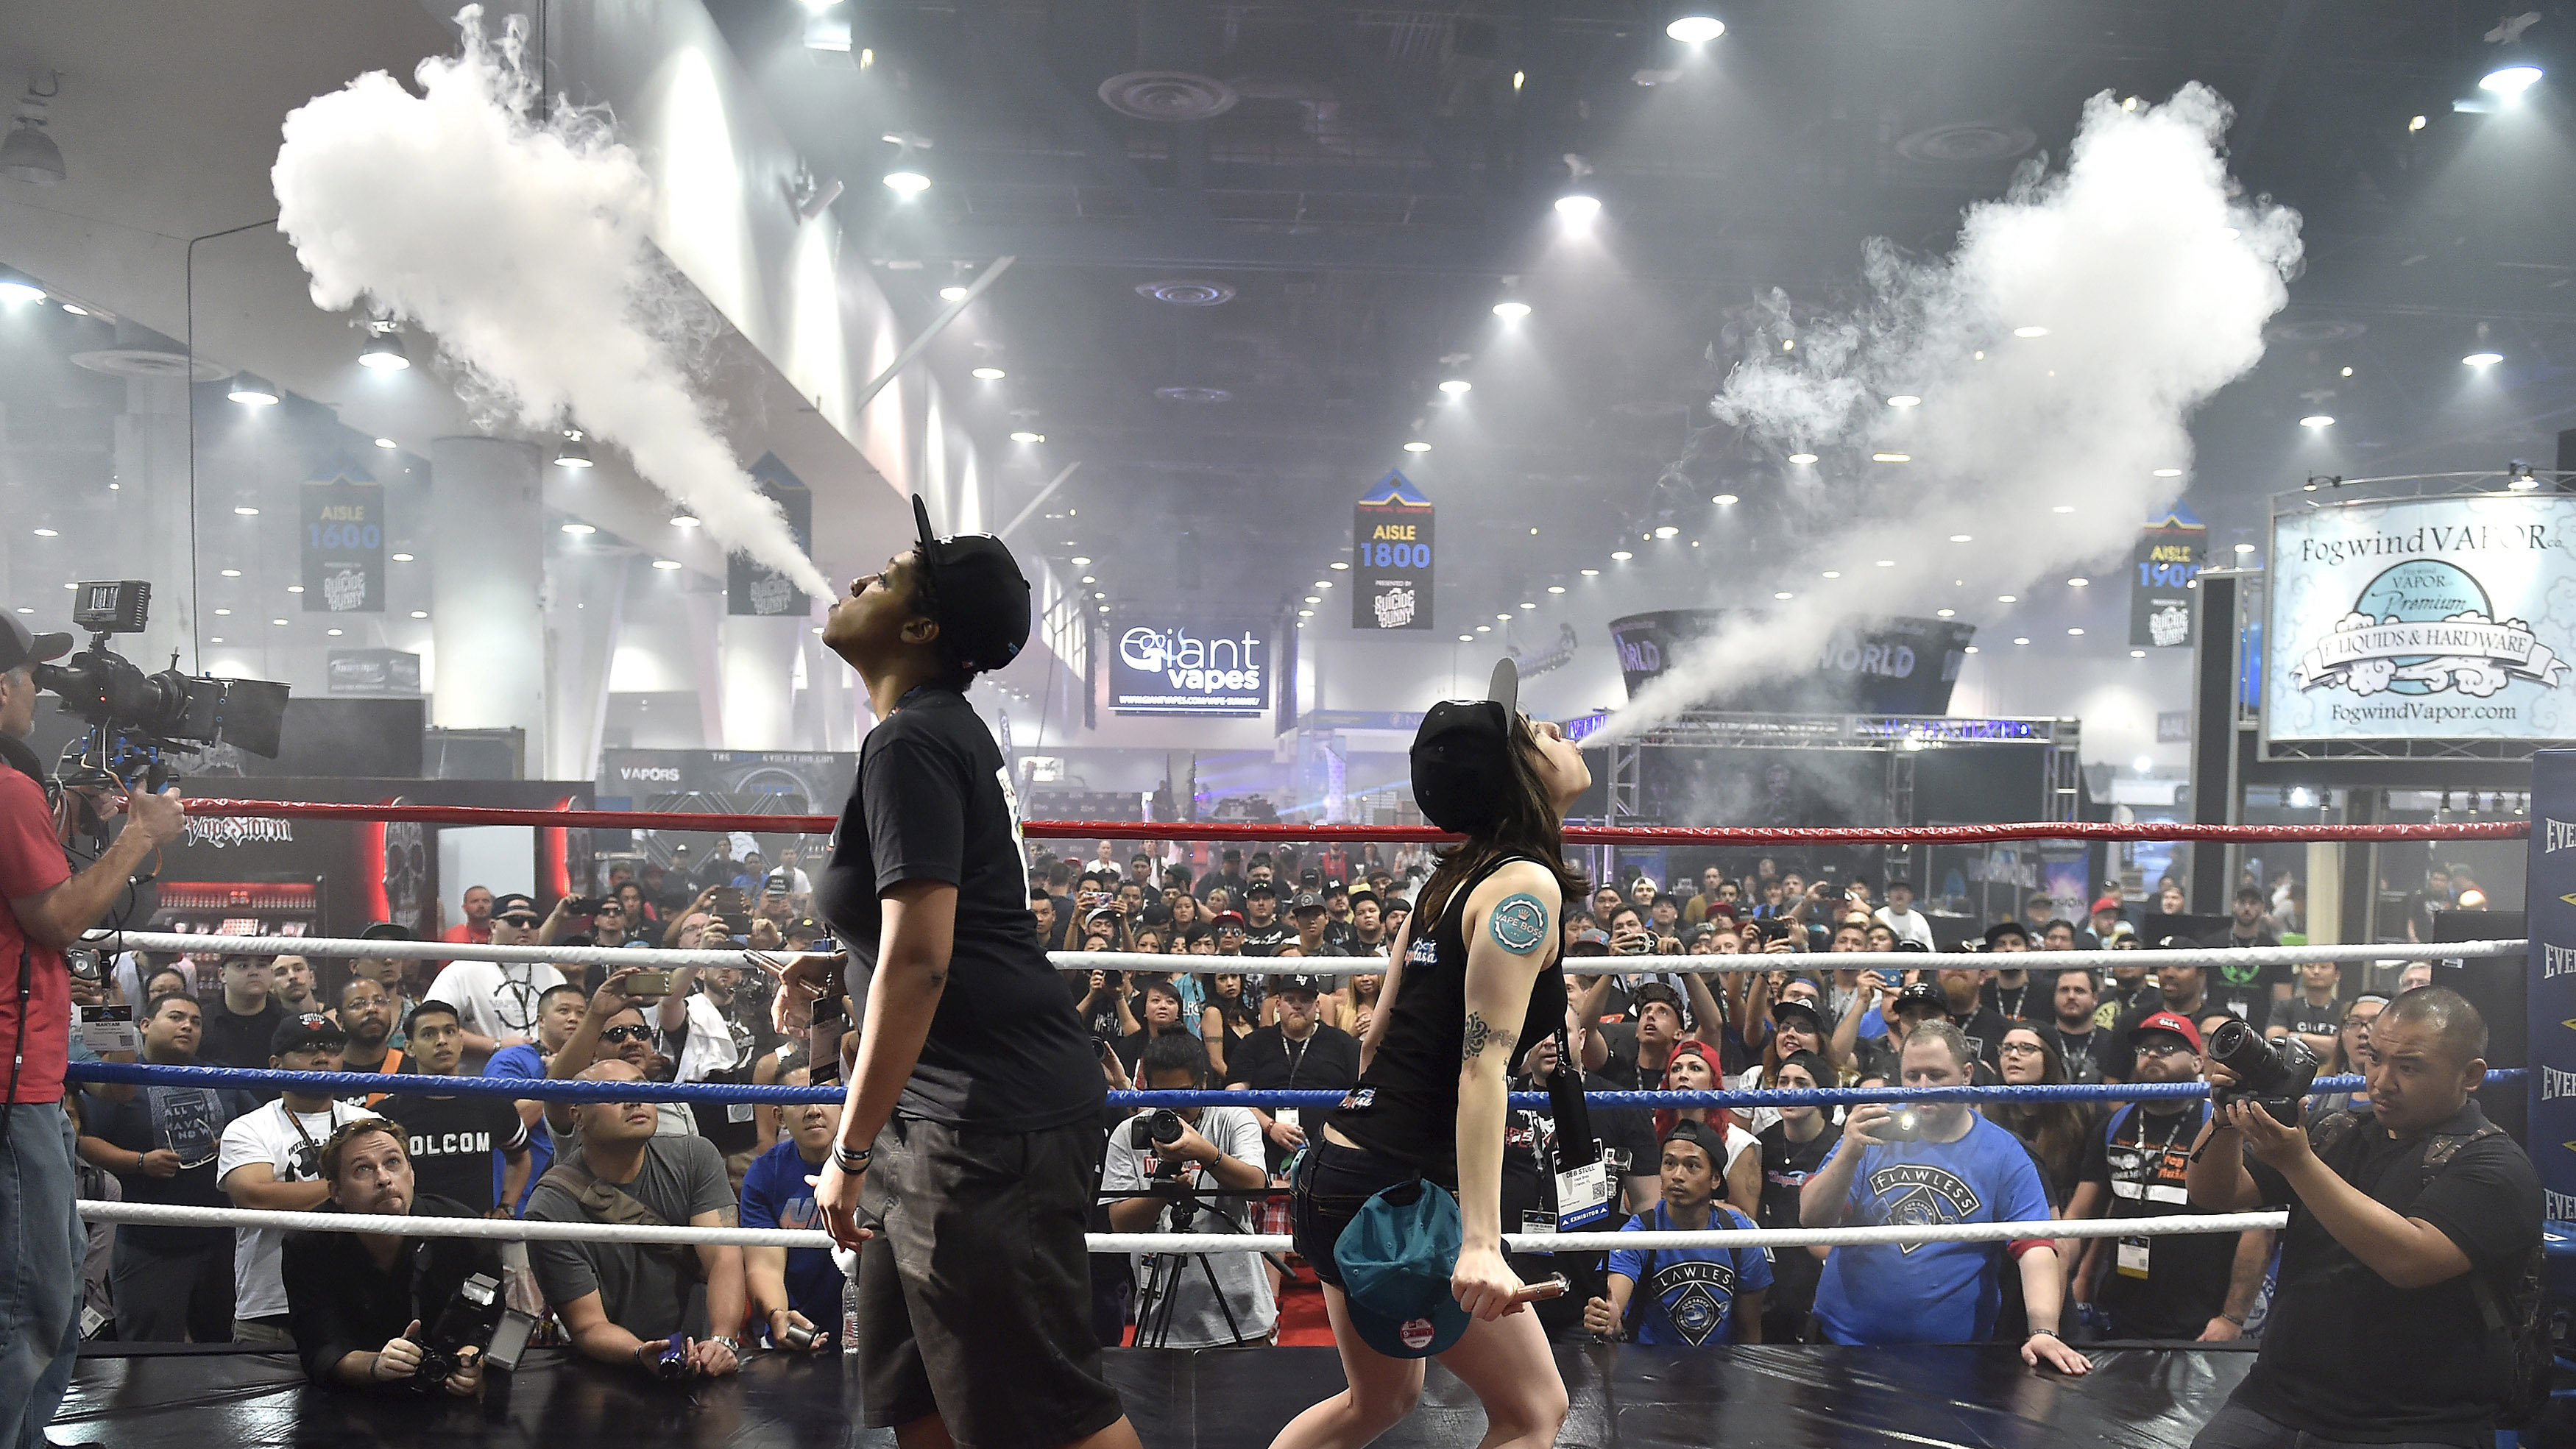 Growing crowds for blowing clouds.